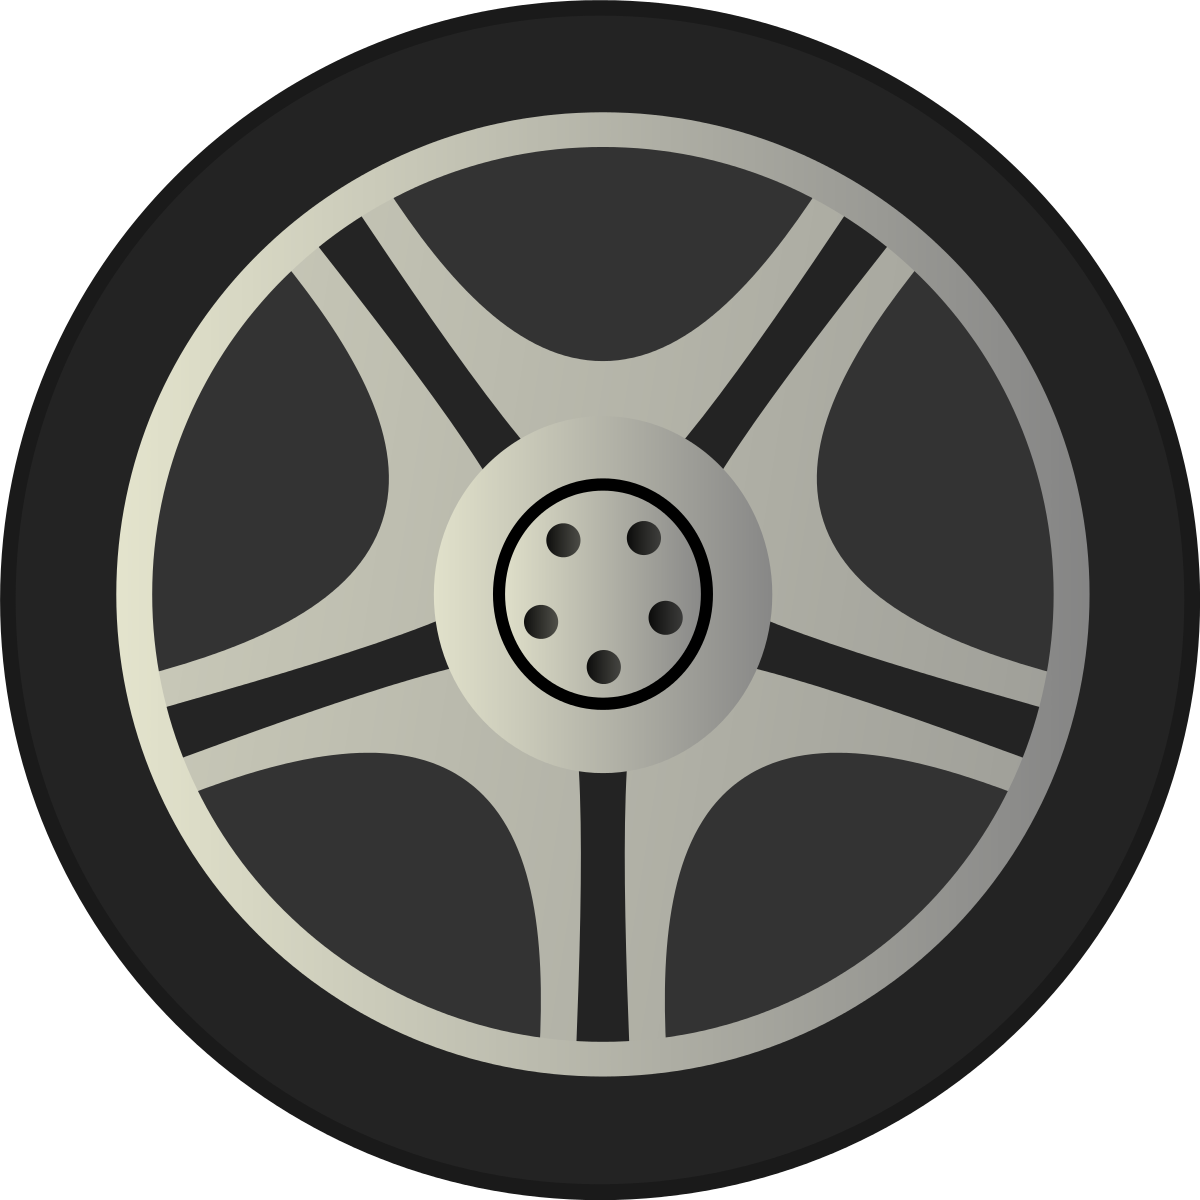 Free Tire Cliparts, Download Free Clip Art, Free Clip Art on.